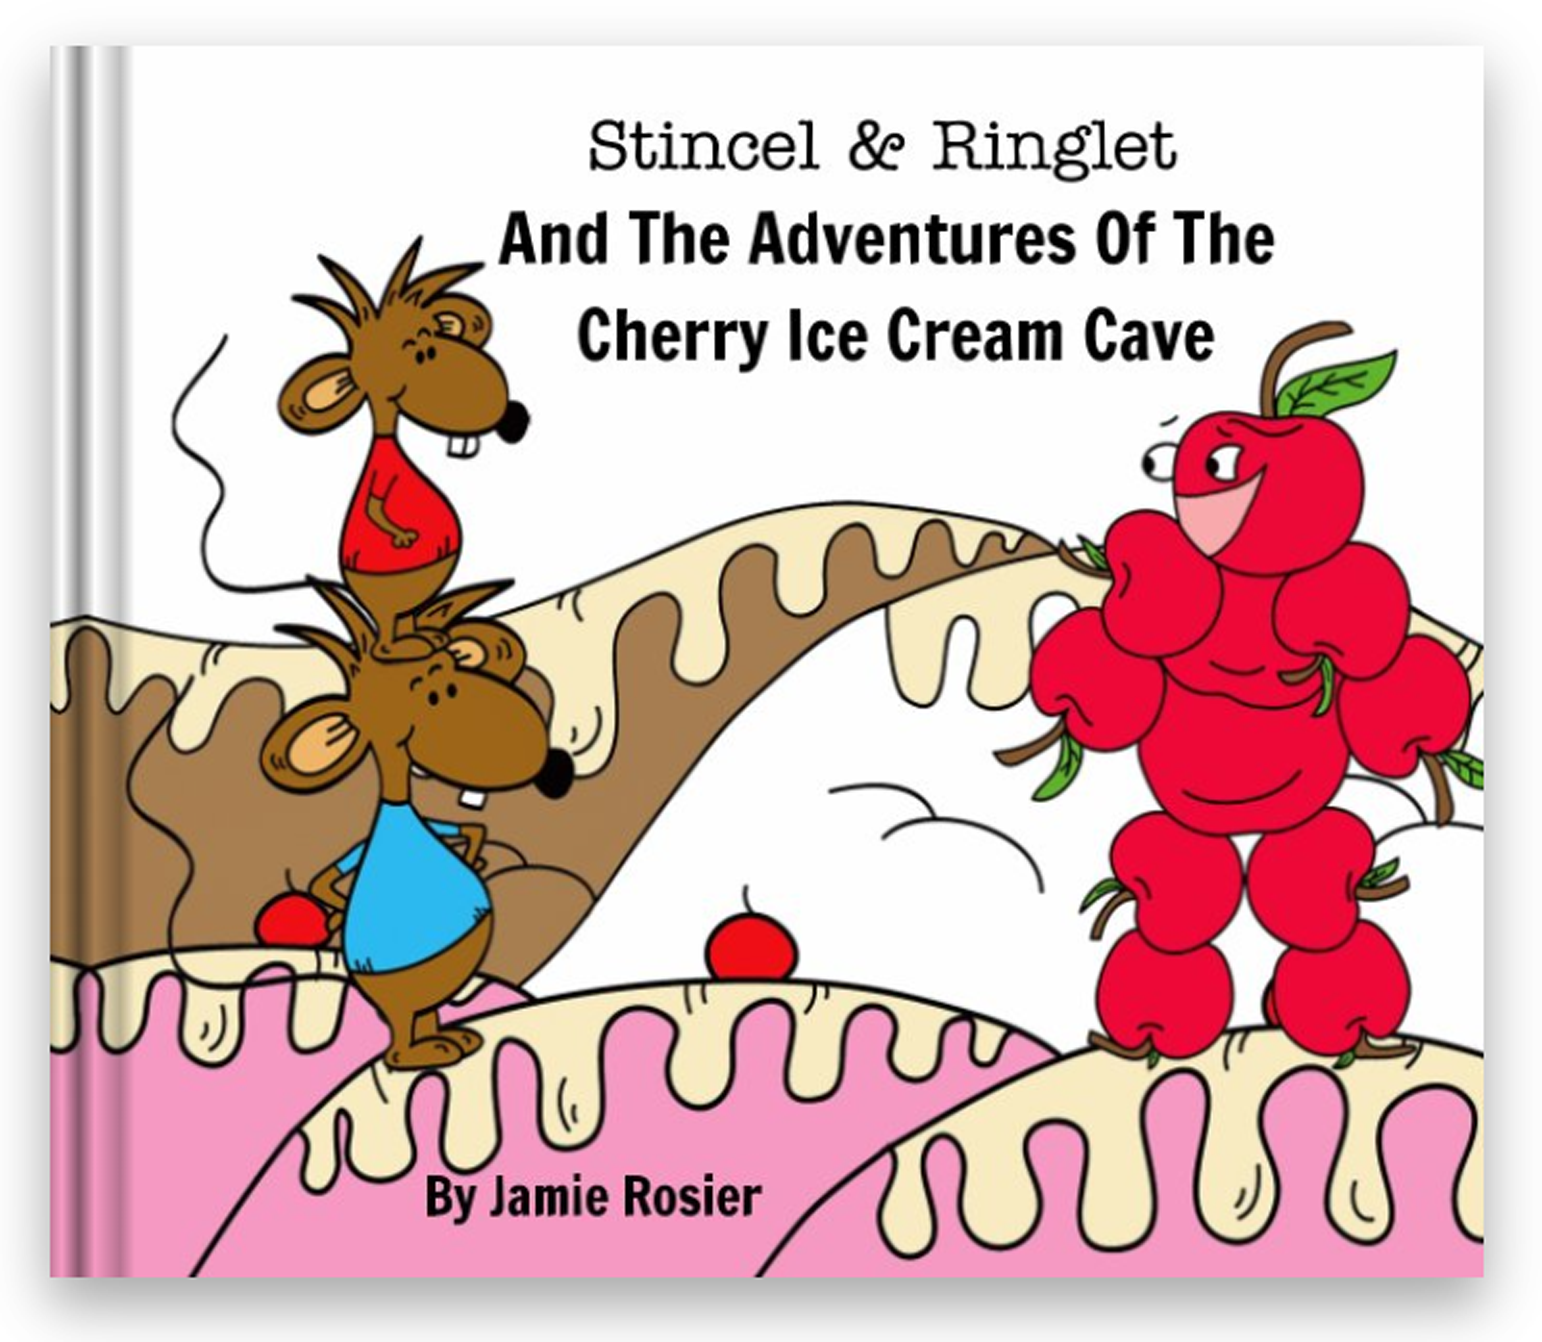 Stincel & Ringlet And The Adventures Of The Cherry Ice Cream Cave Children Book Ebook PDF Download Digital Download Kids Books Mice Mouse Cherry Man | dogandmousecompany.com | Stencil